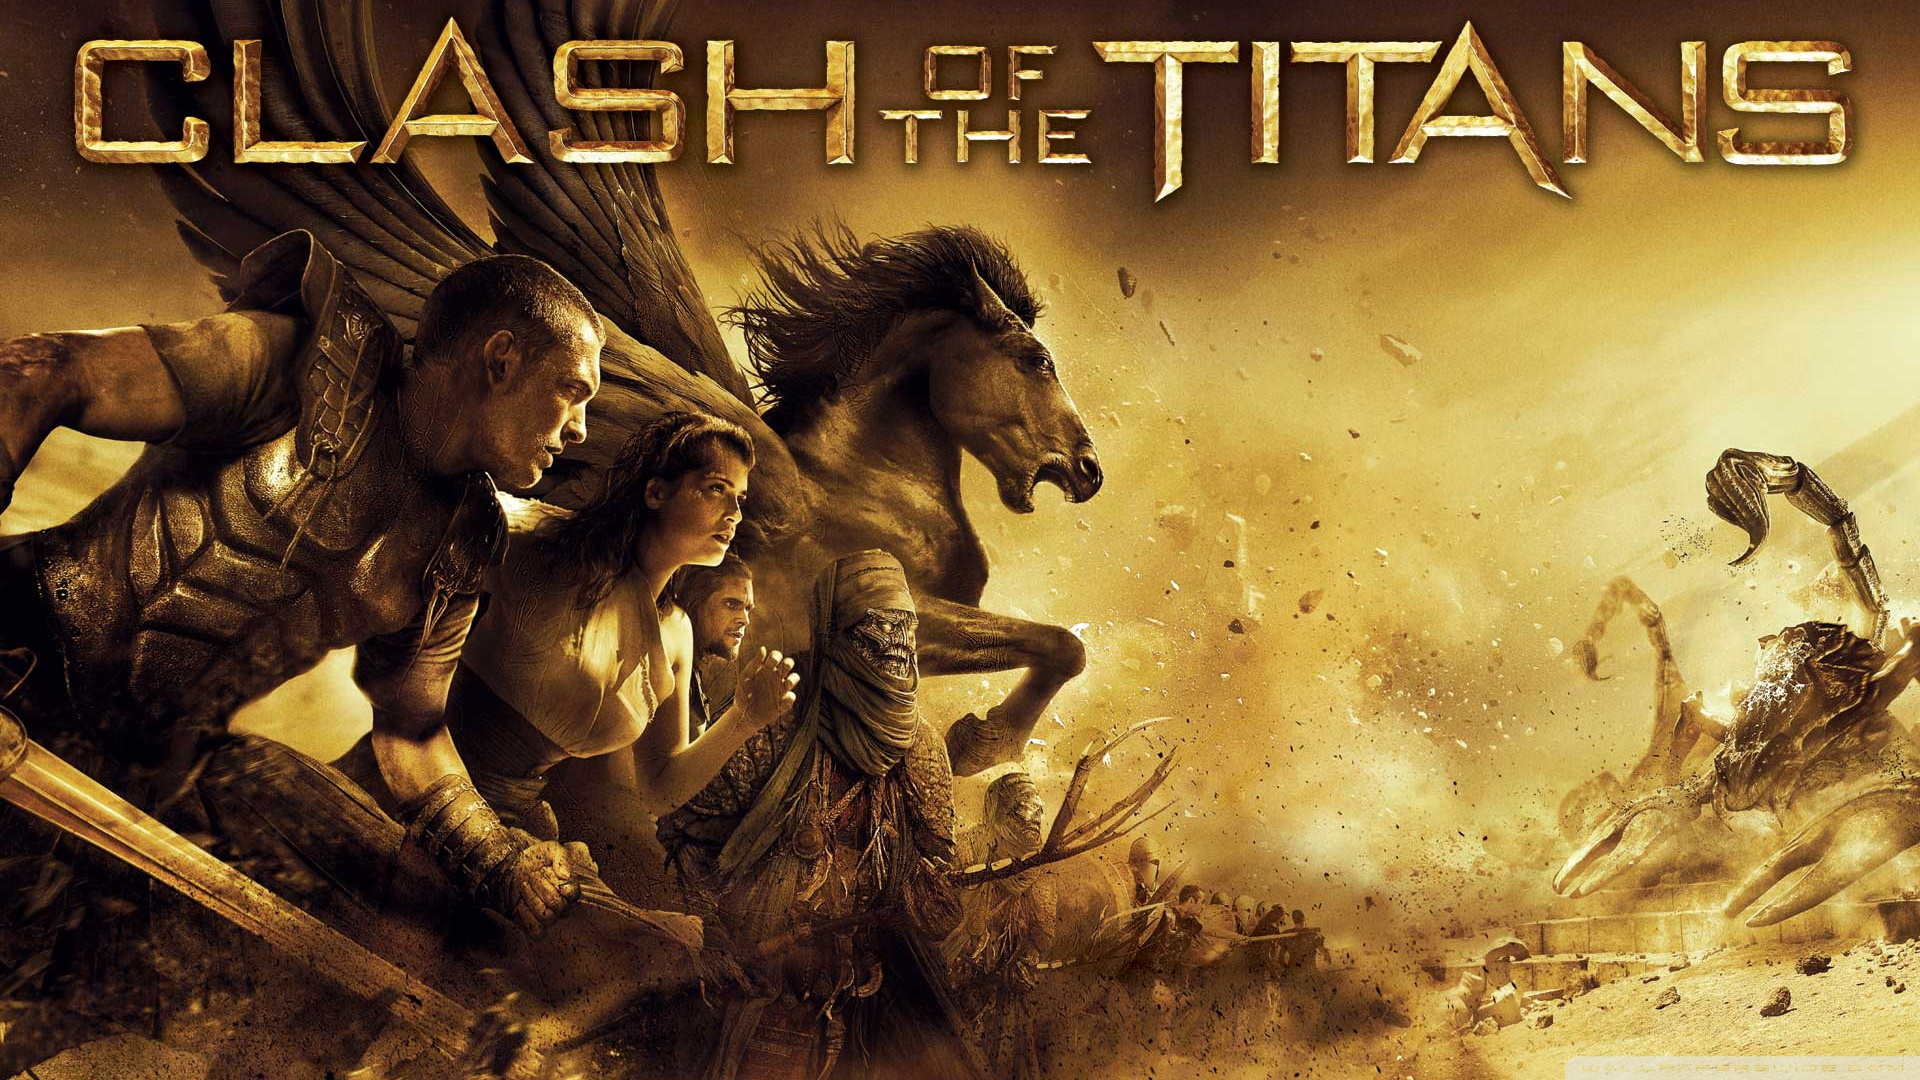 1920x1080 - Clash Of The Titans (2010) Wallpapers 15